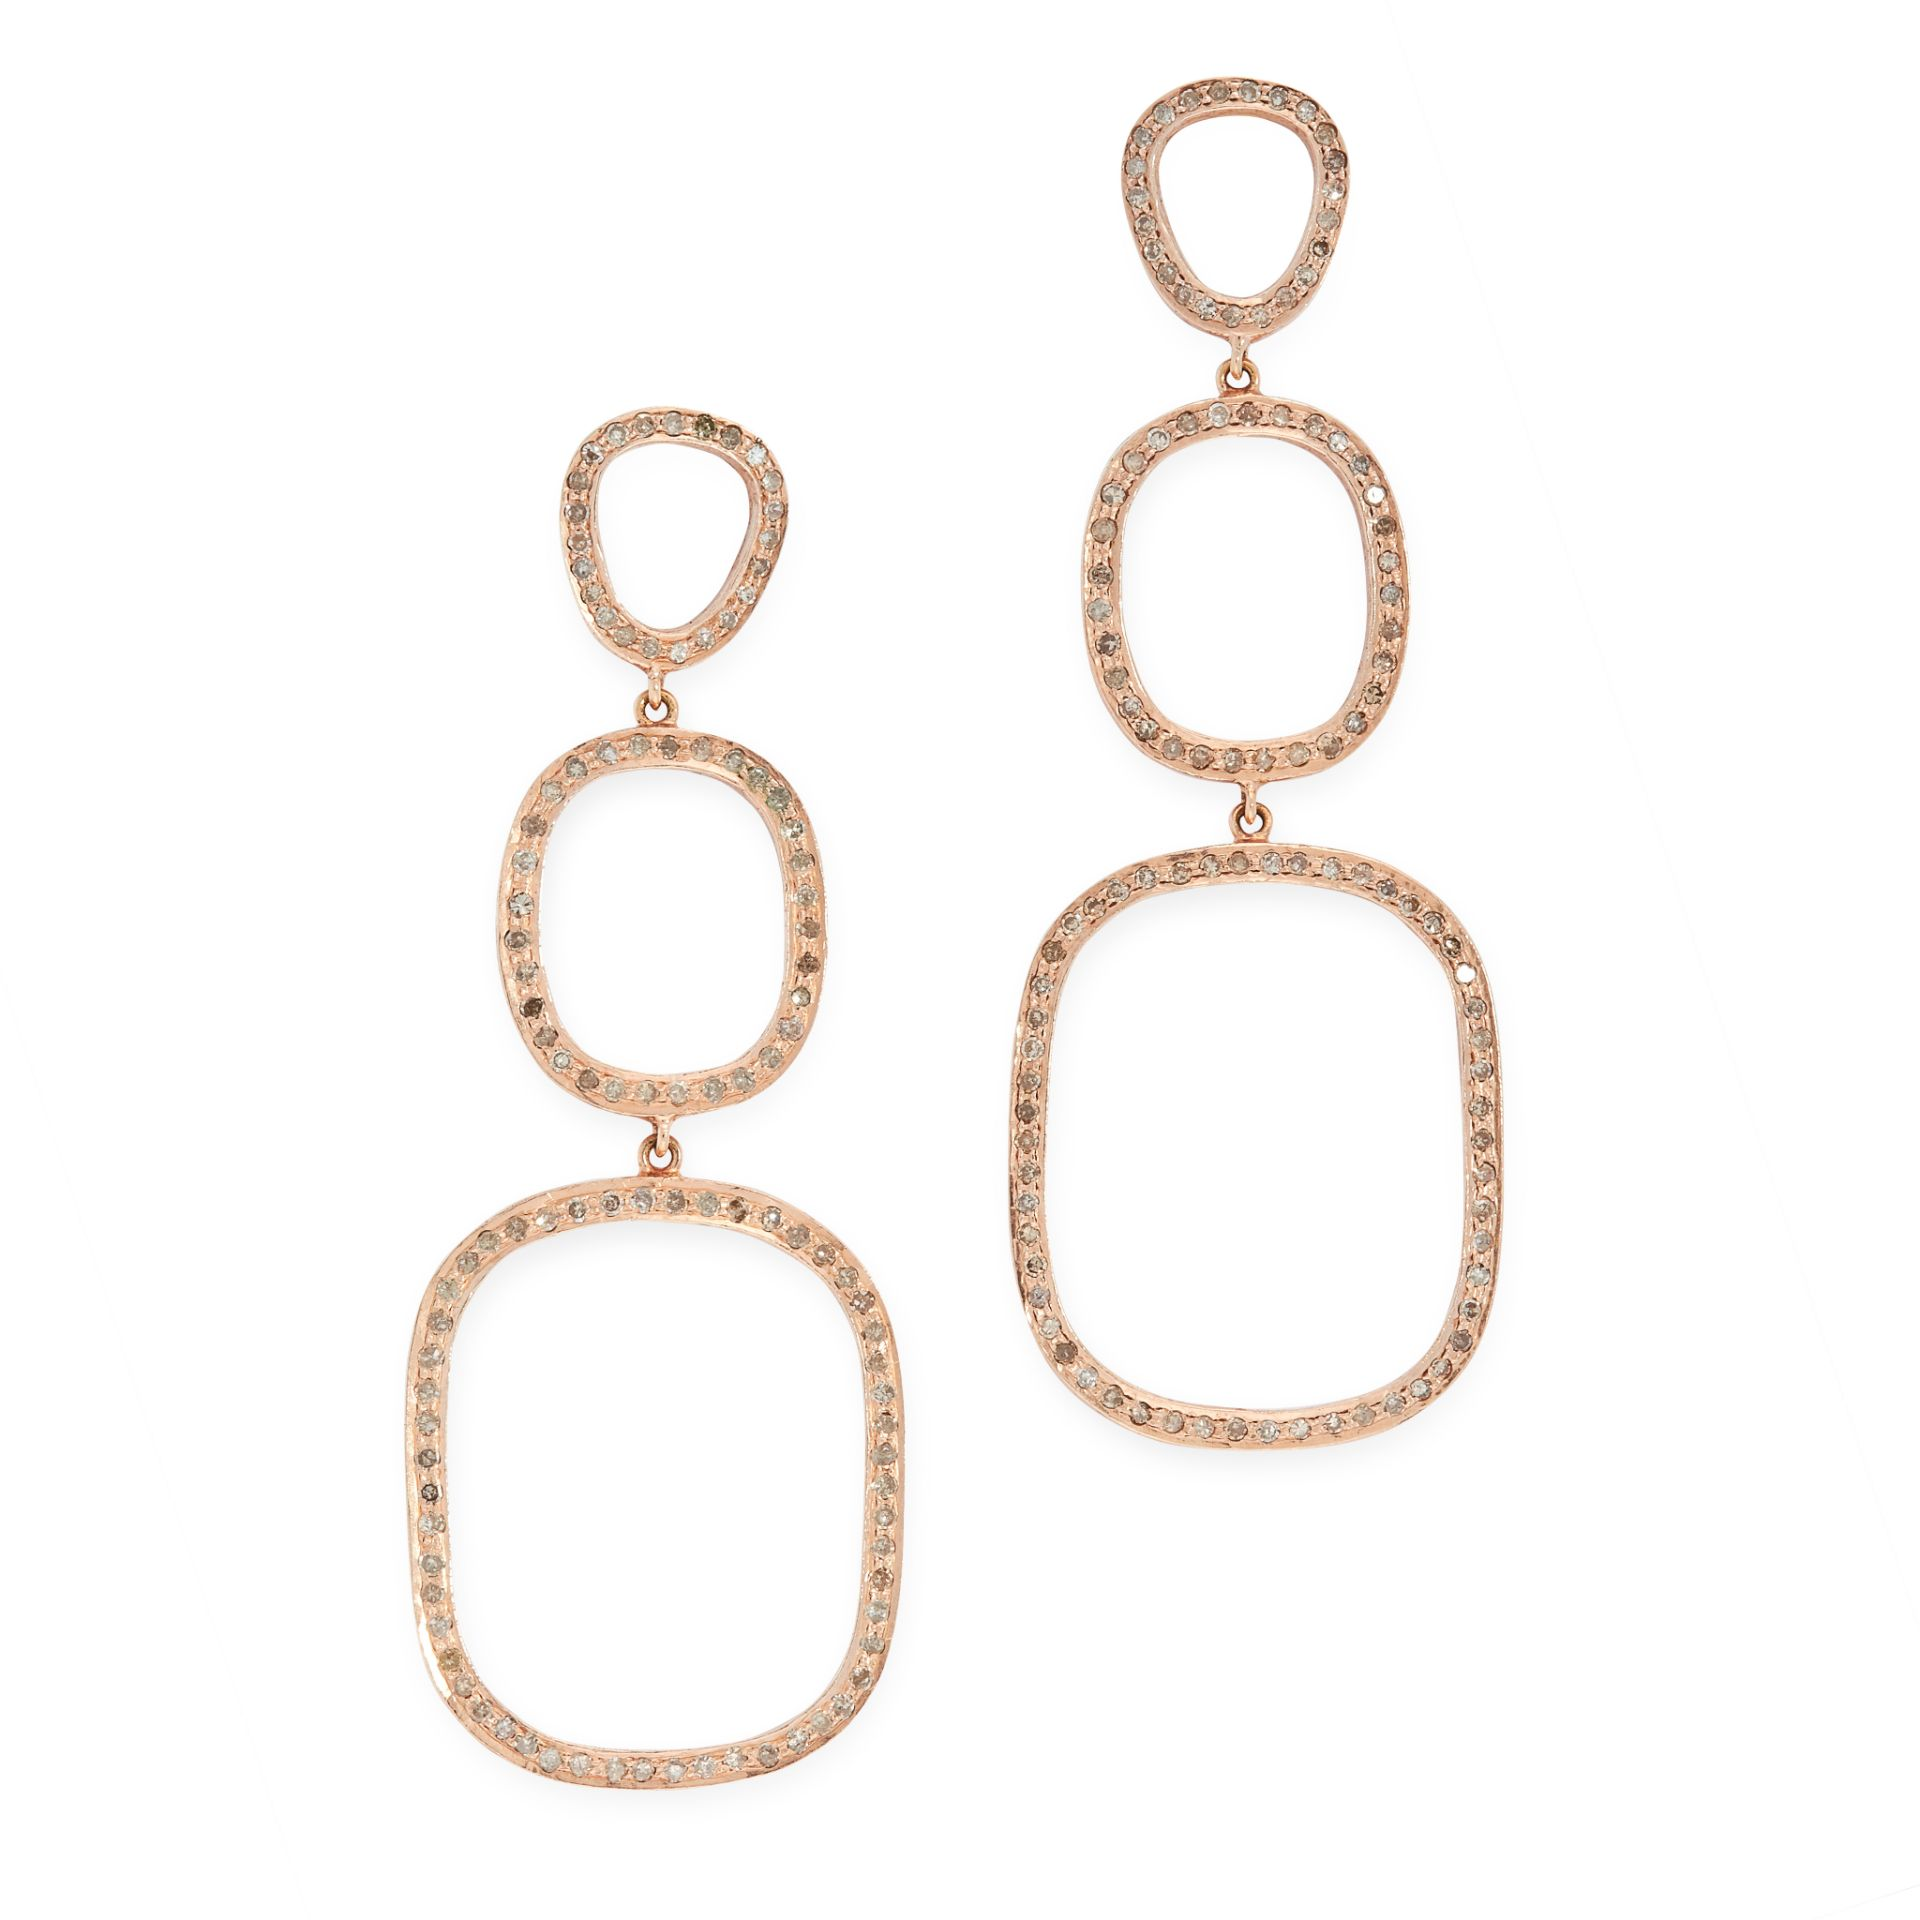 A PAIR OF DIAMOND DROP EARRINGS in the form of three graduated oval drops, set with round cut